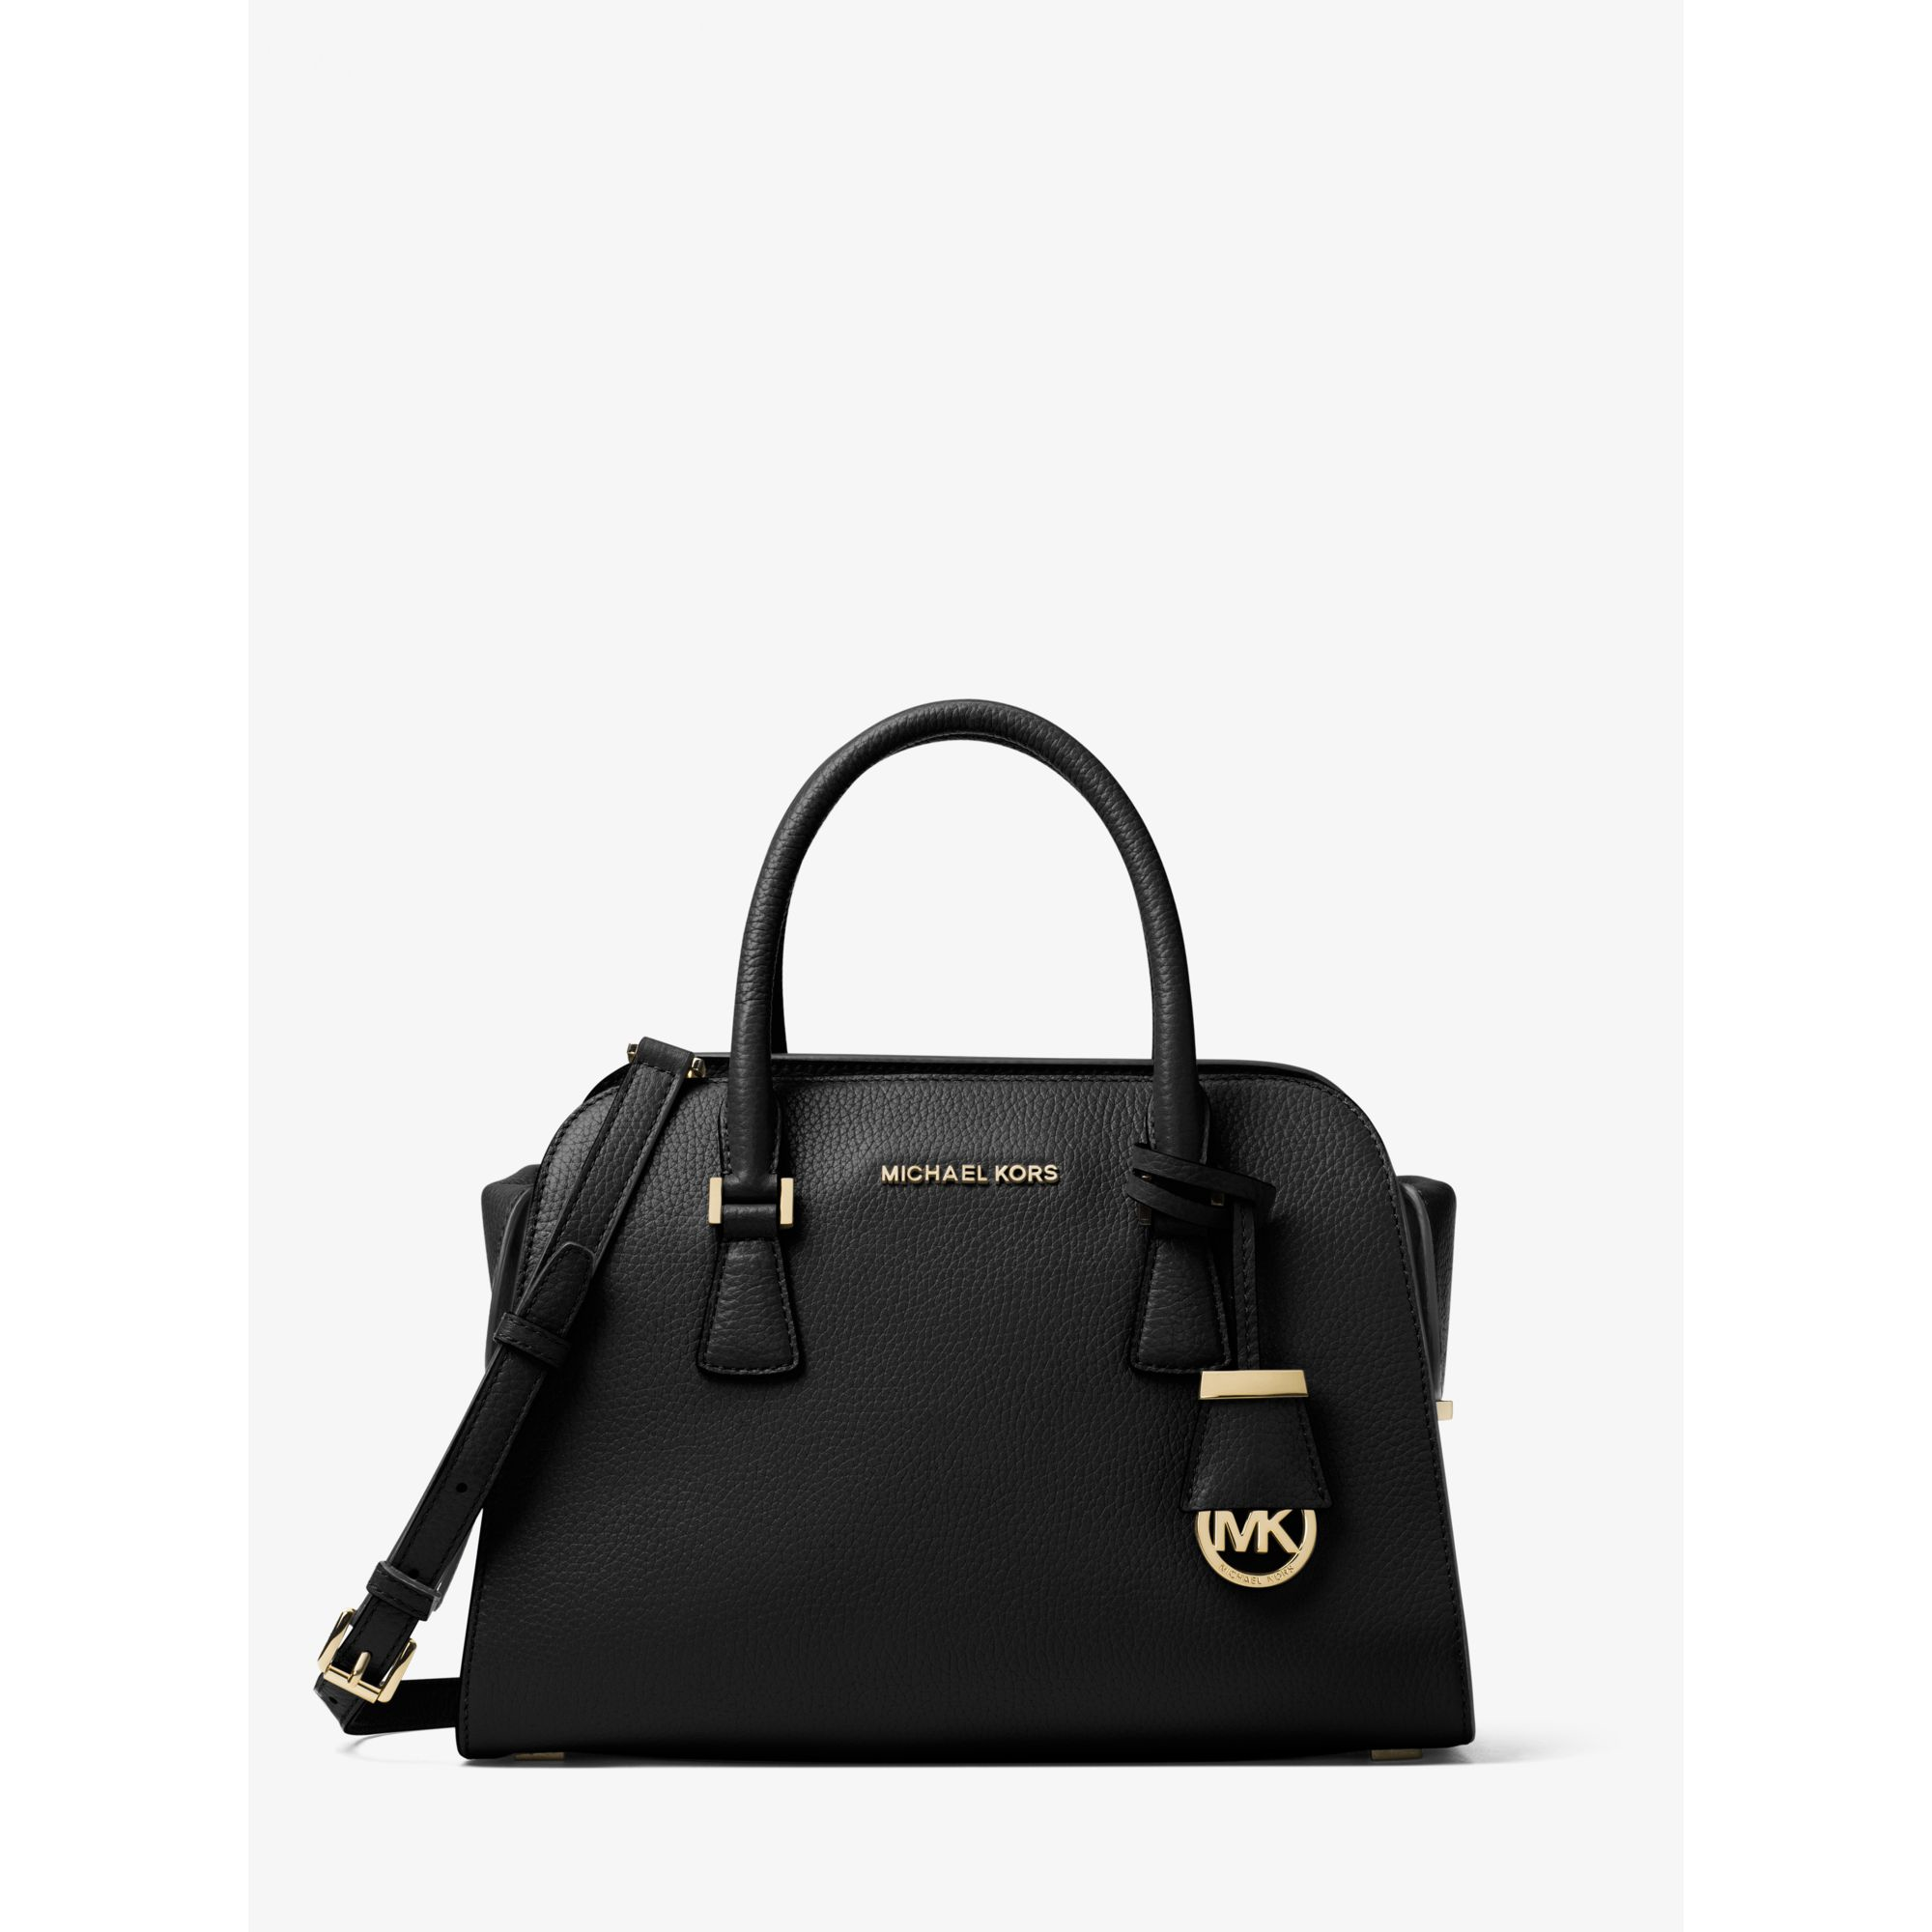 659b67b6dd50 Lyst - Michael Kors Harper Medium Leather Satchel in Black